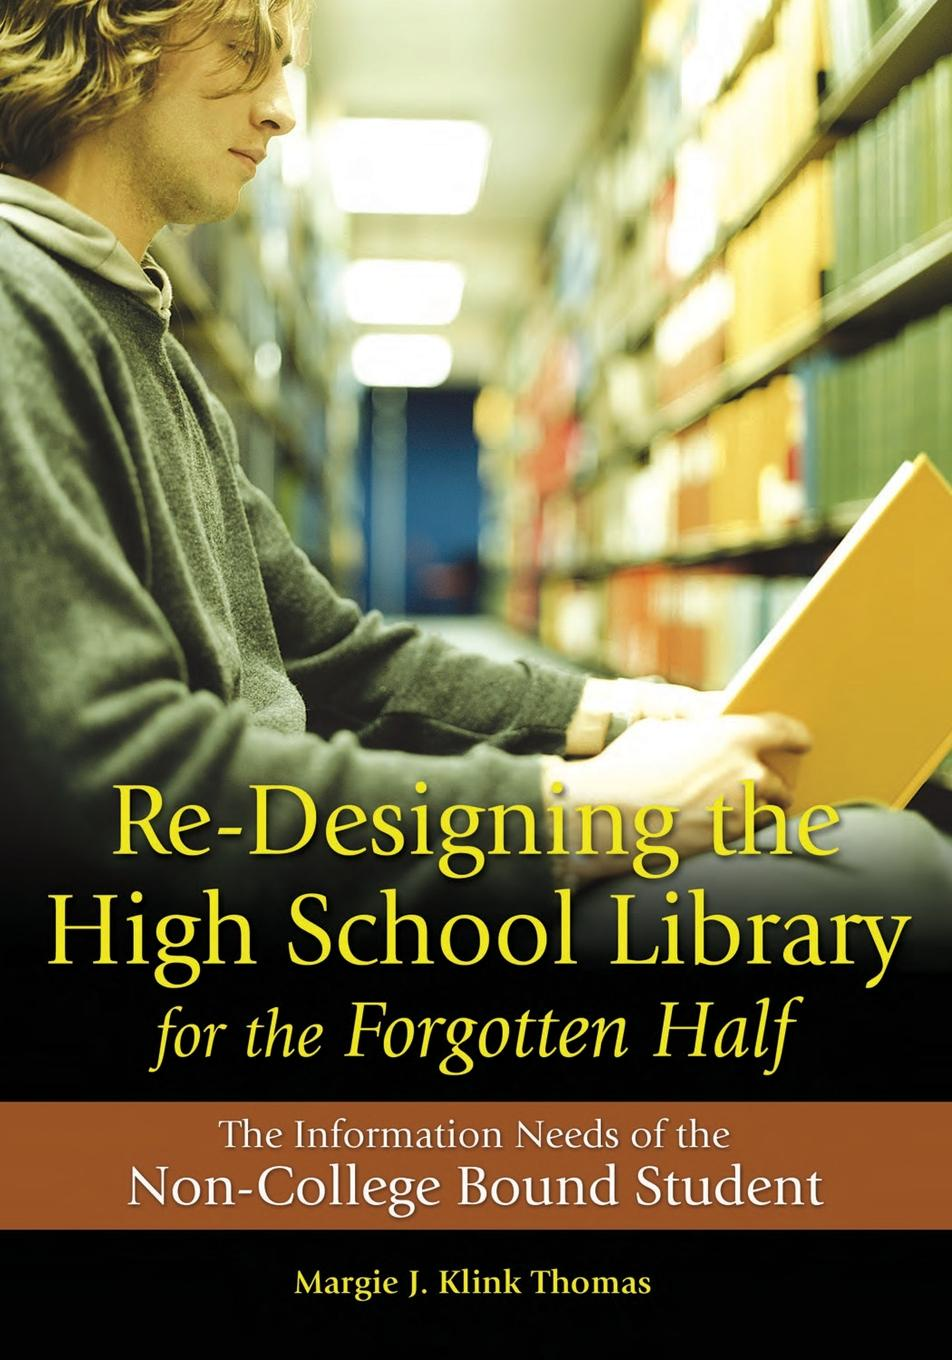 Margie Klink Thomas Re-Designing the High School Library for Forgotten Half. The Information Needs of Non-College Bound Student